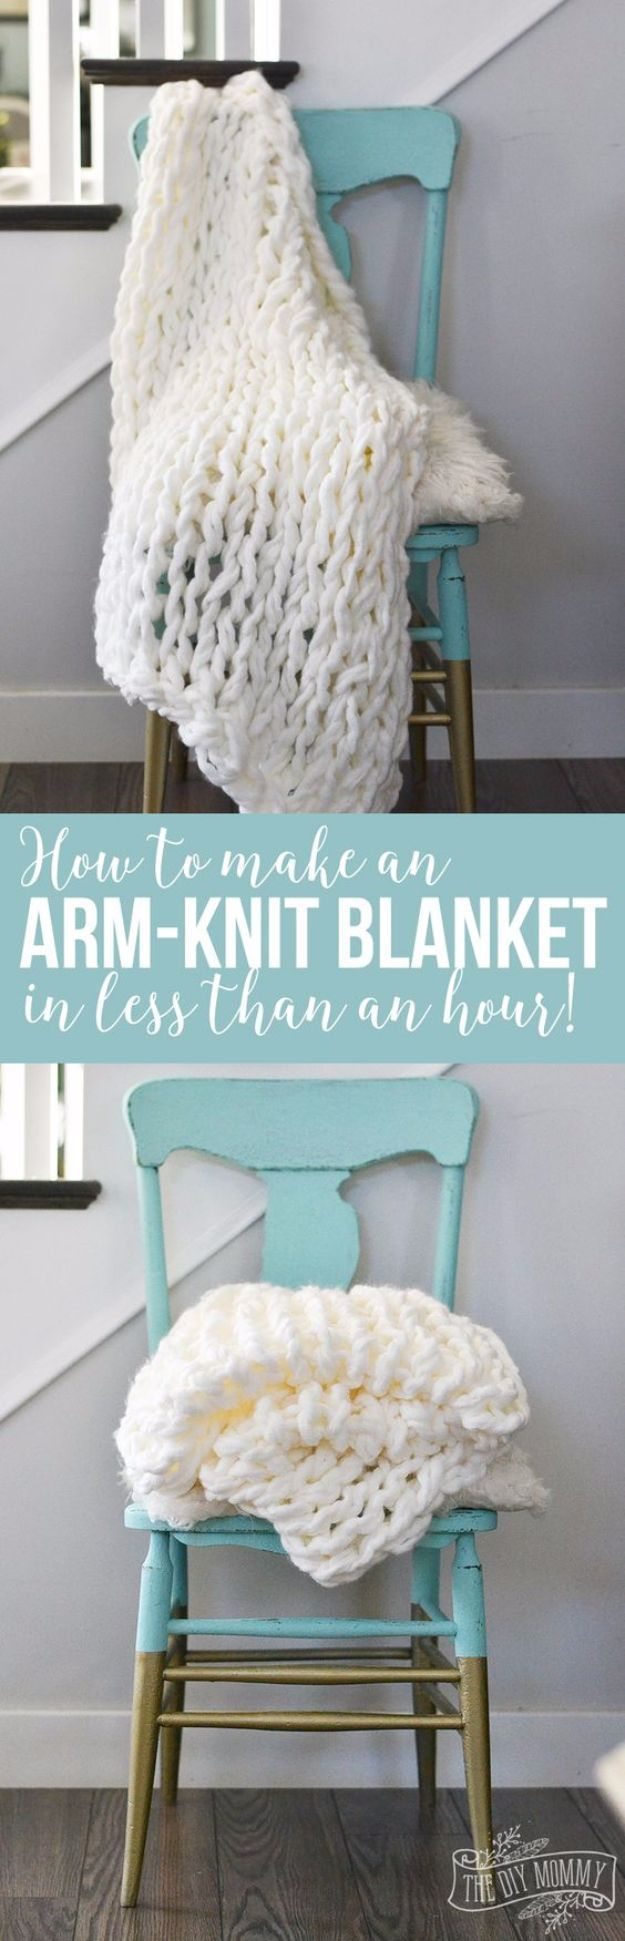 25 best ideas about knitted gifts on pinterest knit gifts knitting and easy knitting. Black Bedroom Furniture Sets. Home Design Ideas